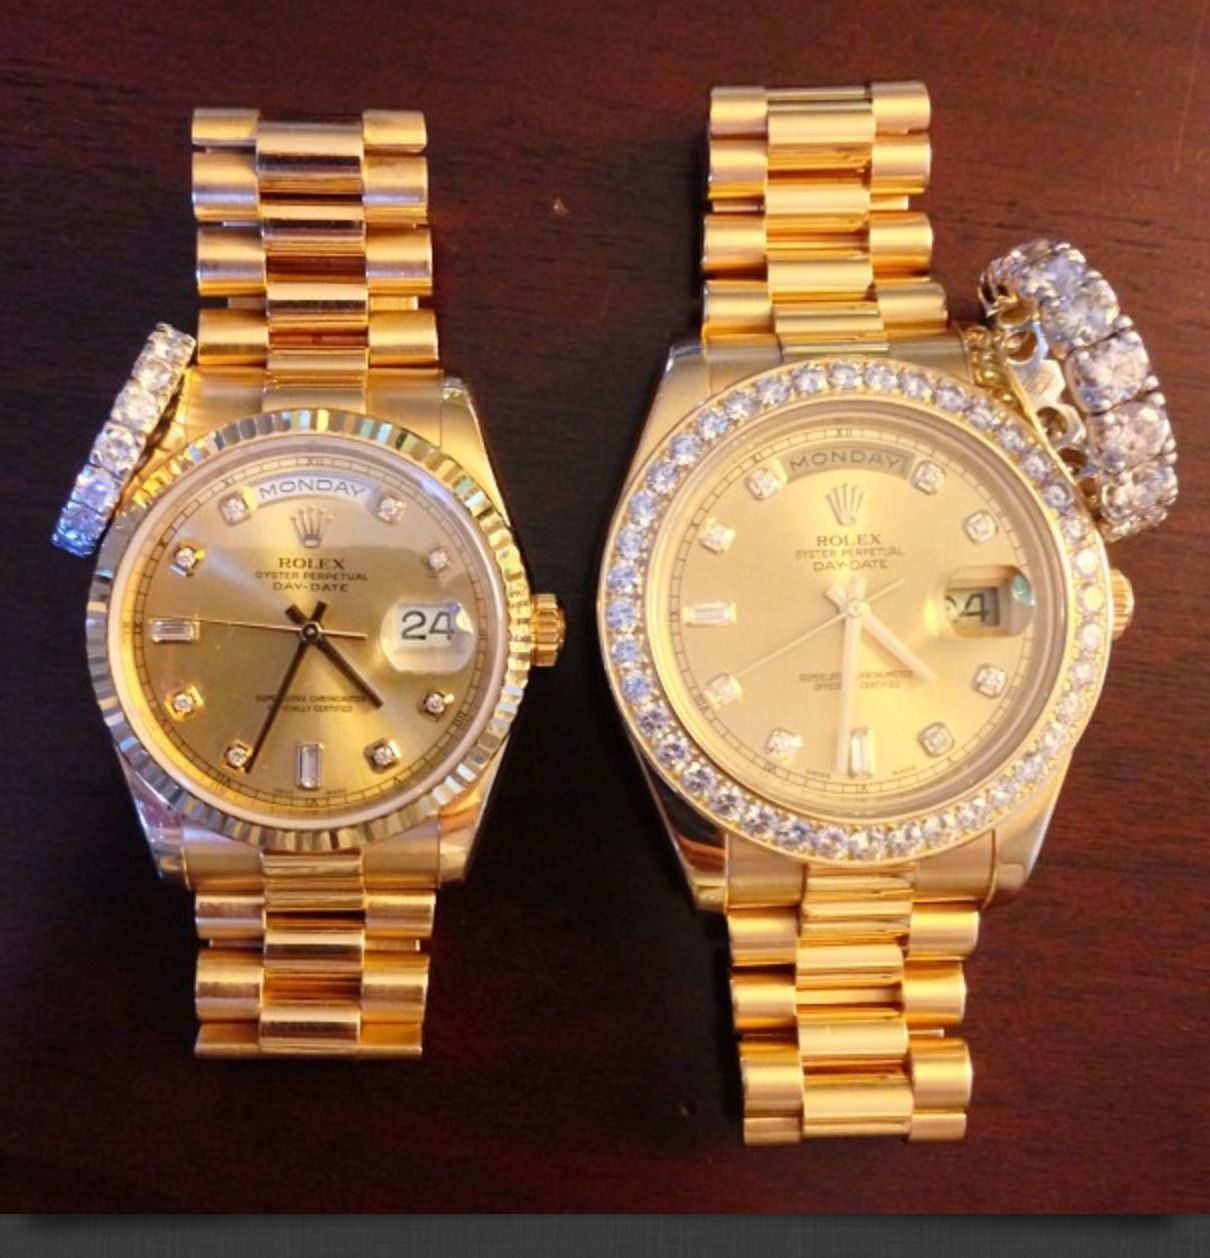 His &her His and hers rolex, Fashion watches, Gold watch